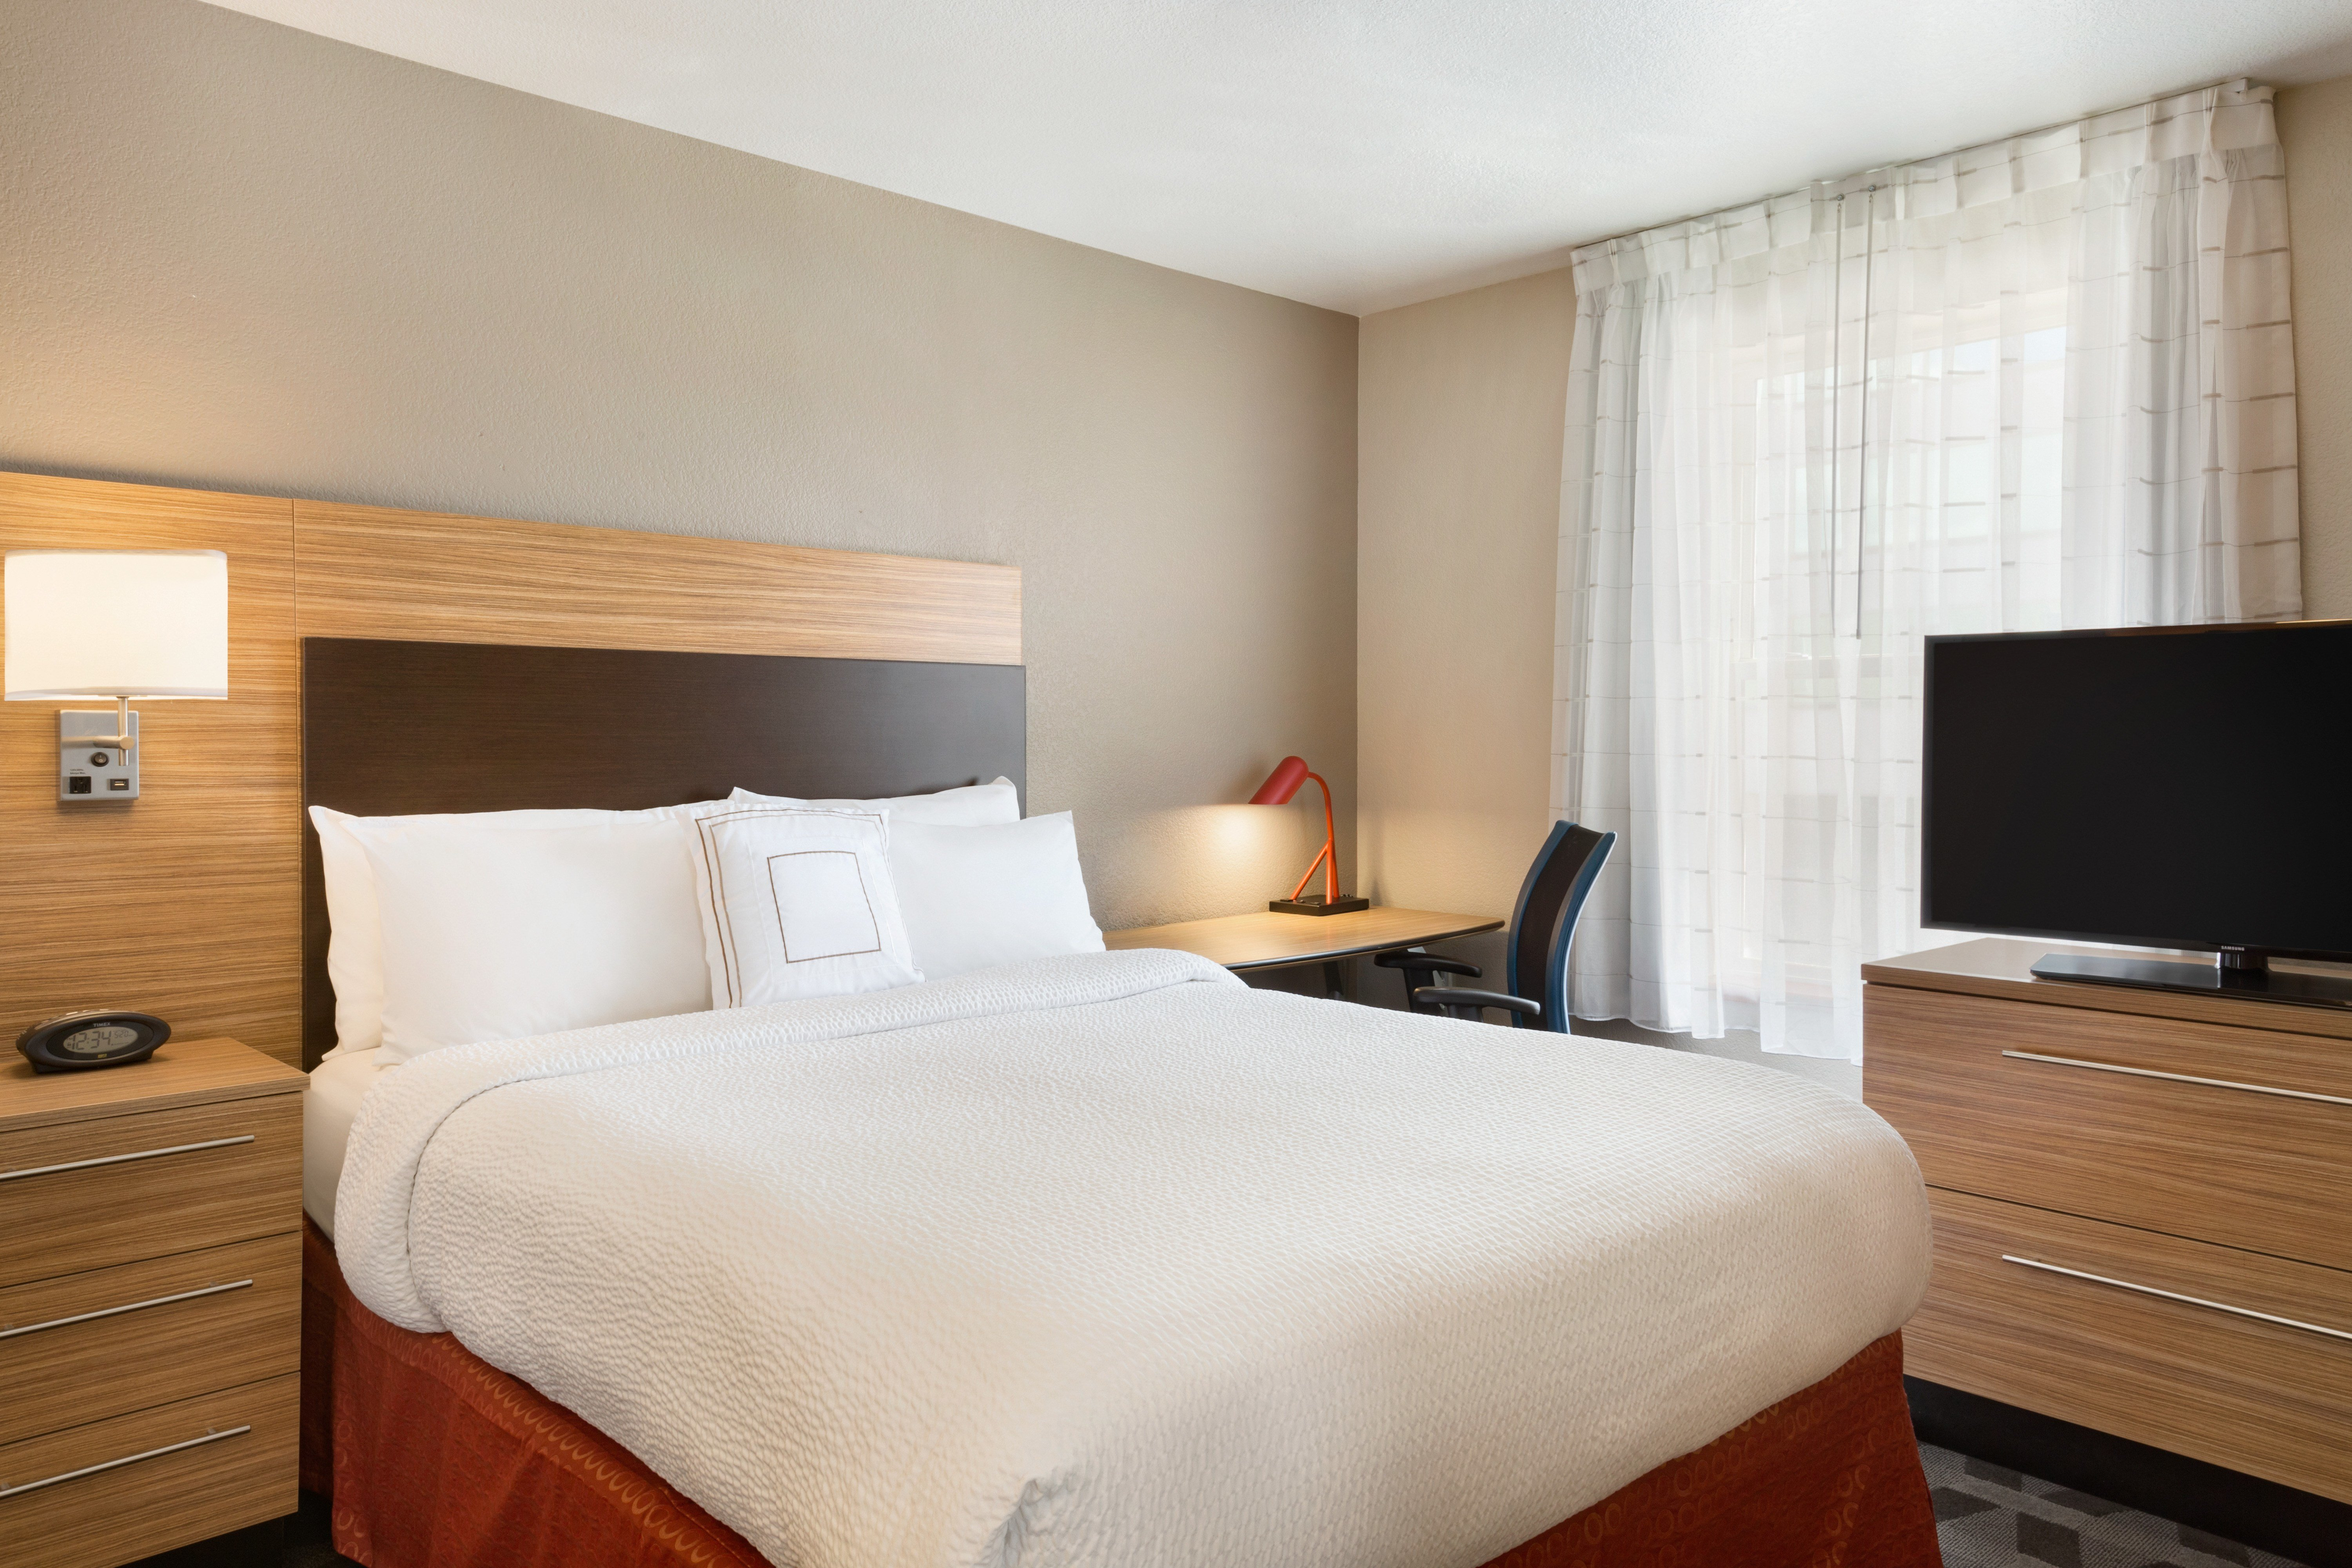 Best 420 Friendly Hotels Denver Colorado My 420 Tours With Pictures